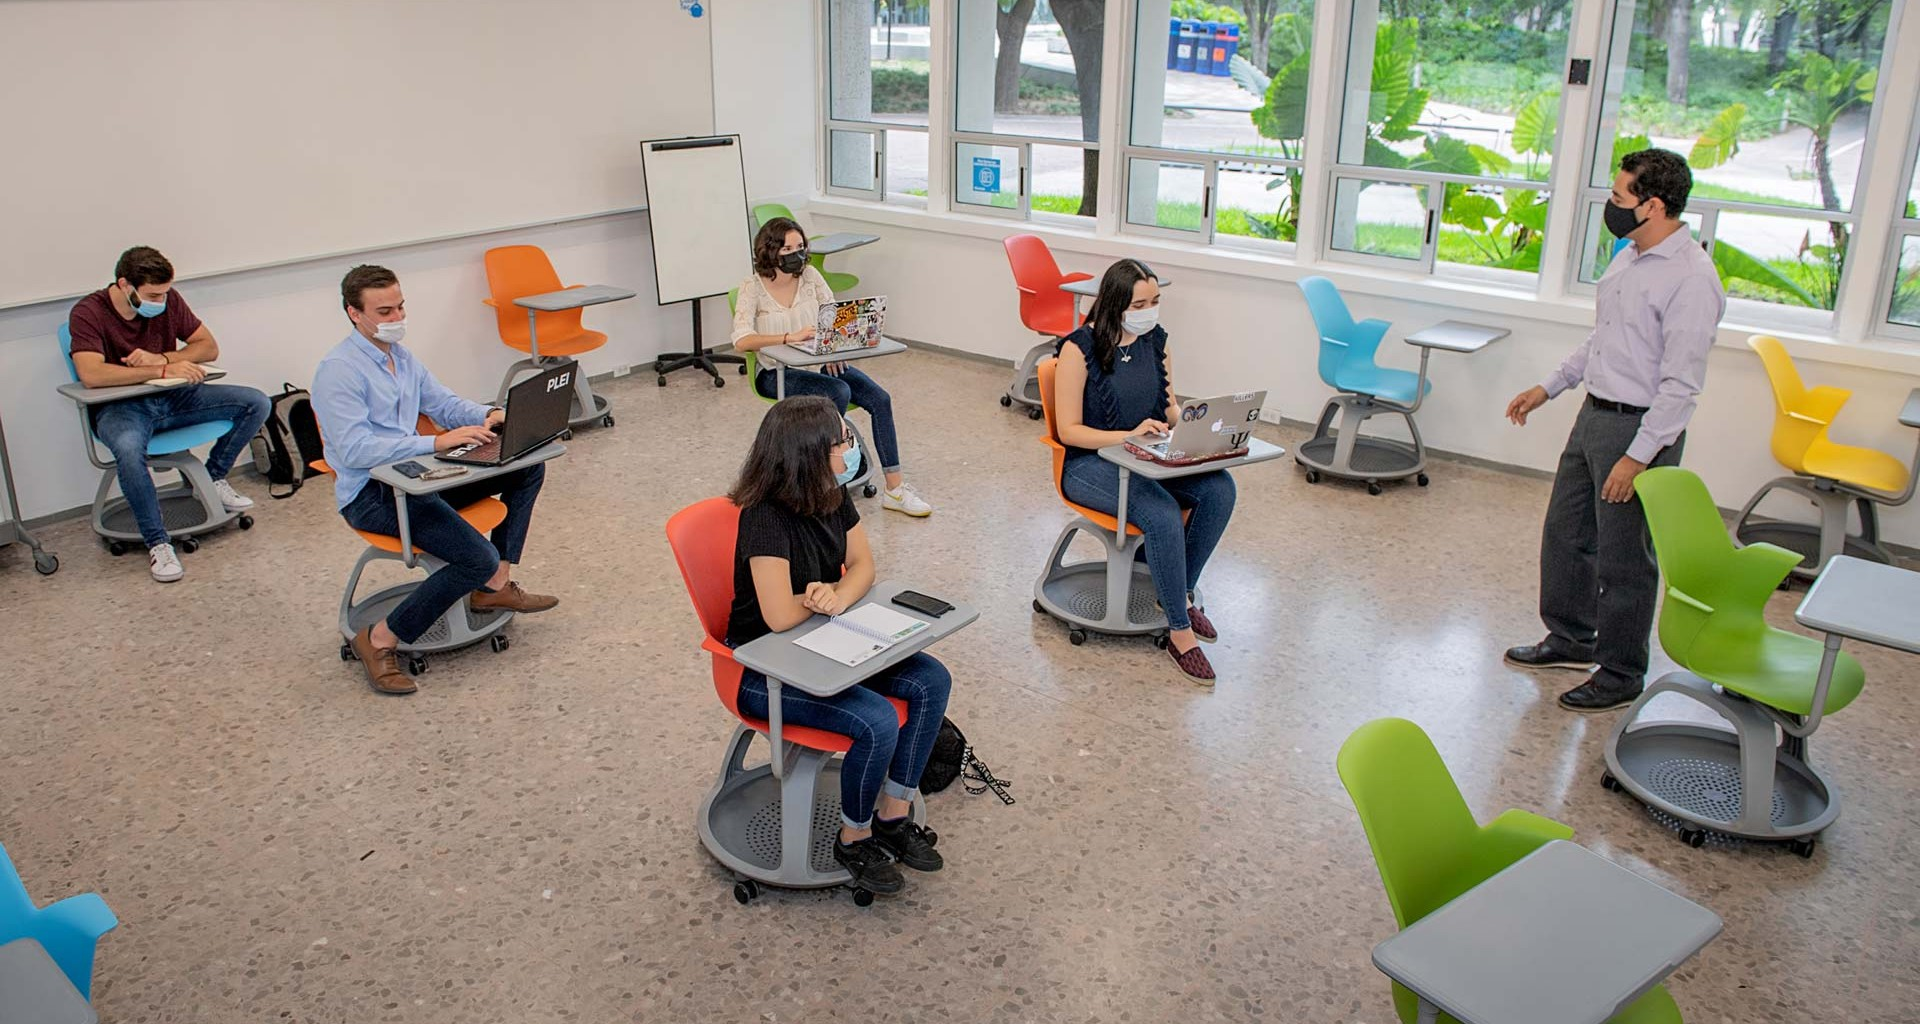 Are you a Tec student? Here's the return to classes with HyFlex+Tec